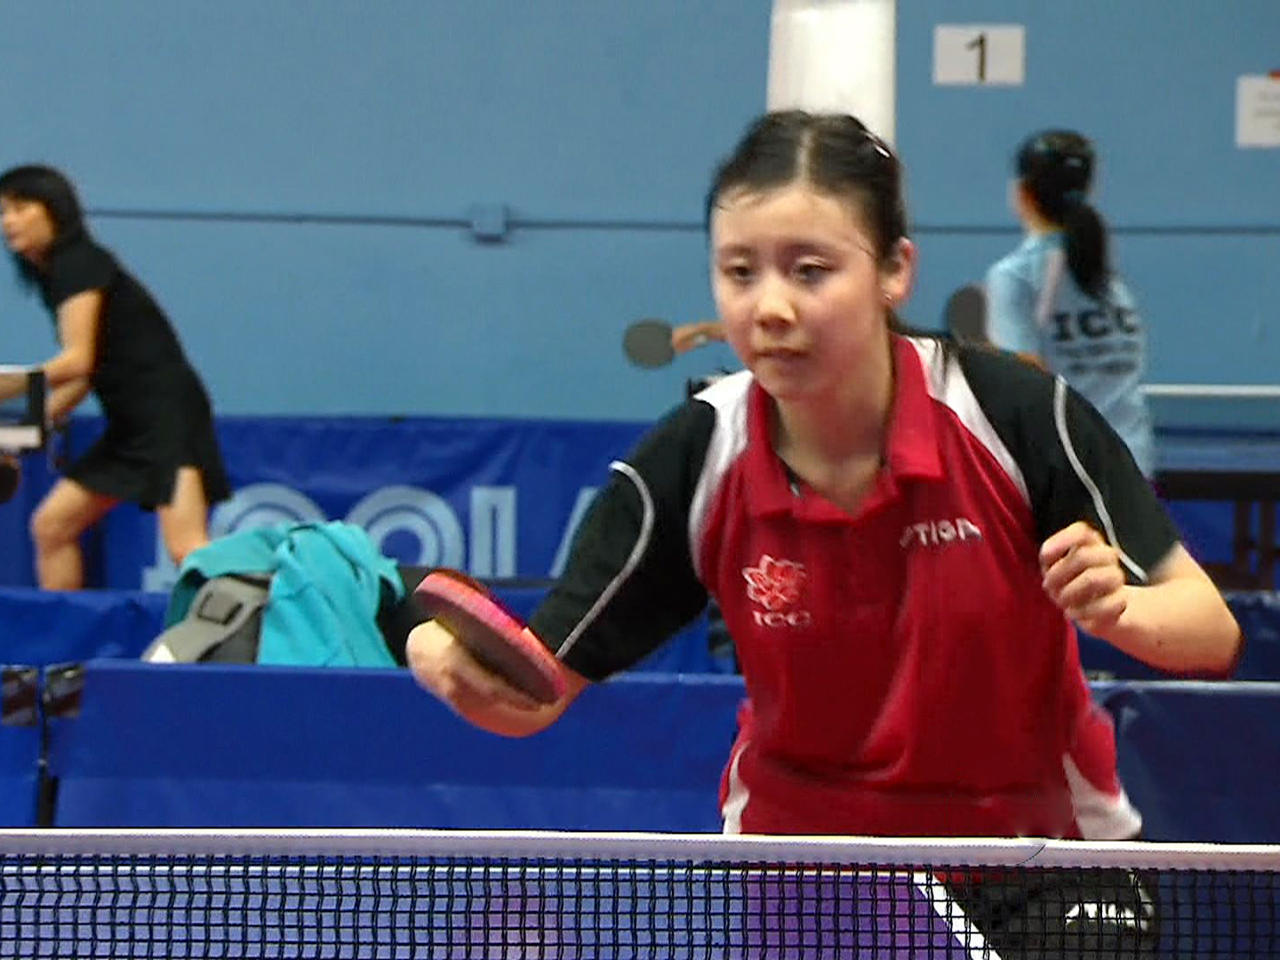 Ping Pong prodigy sets sights on Olympic gold - CBS News